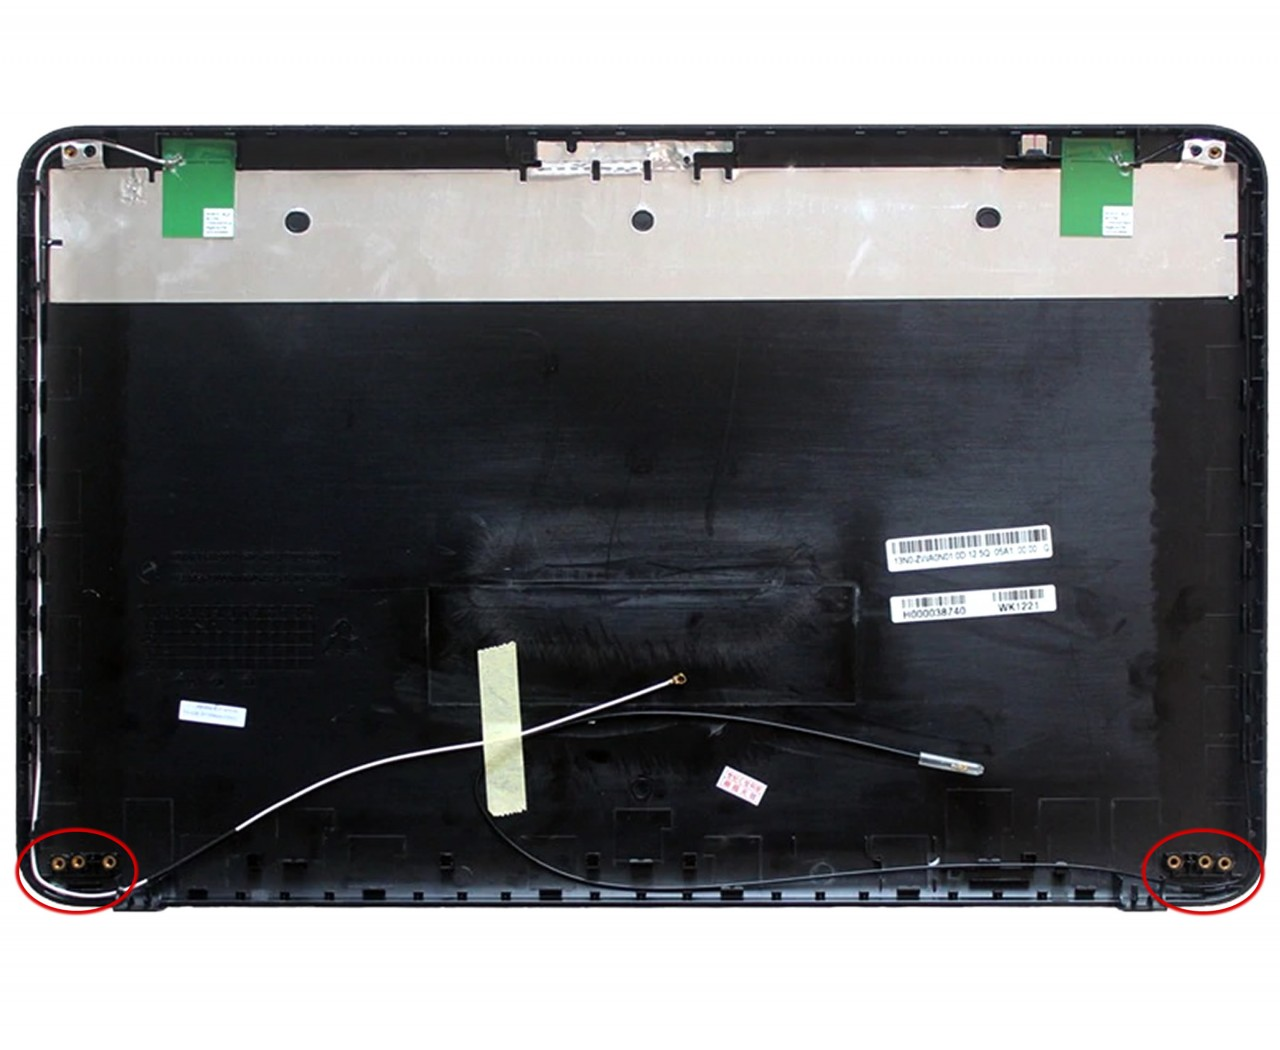 Capac Display BackCover Toshiba H000038650 Carcasa Display Neagra cu 3 Suruburi Balamale imagine powerlaptop.ro 2021